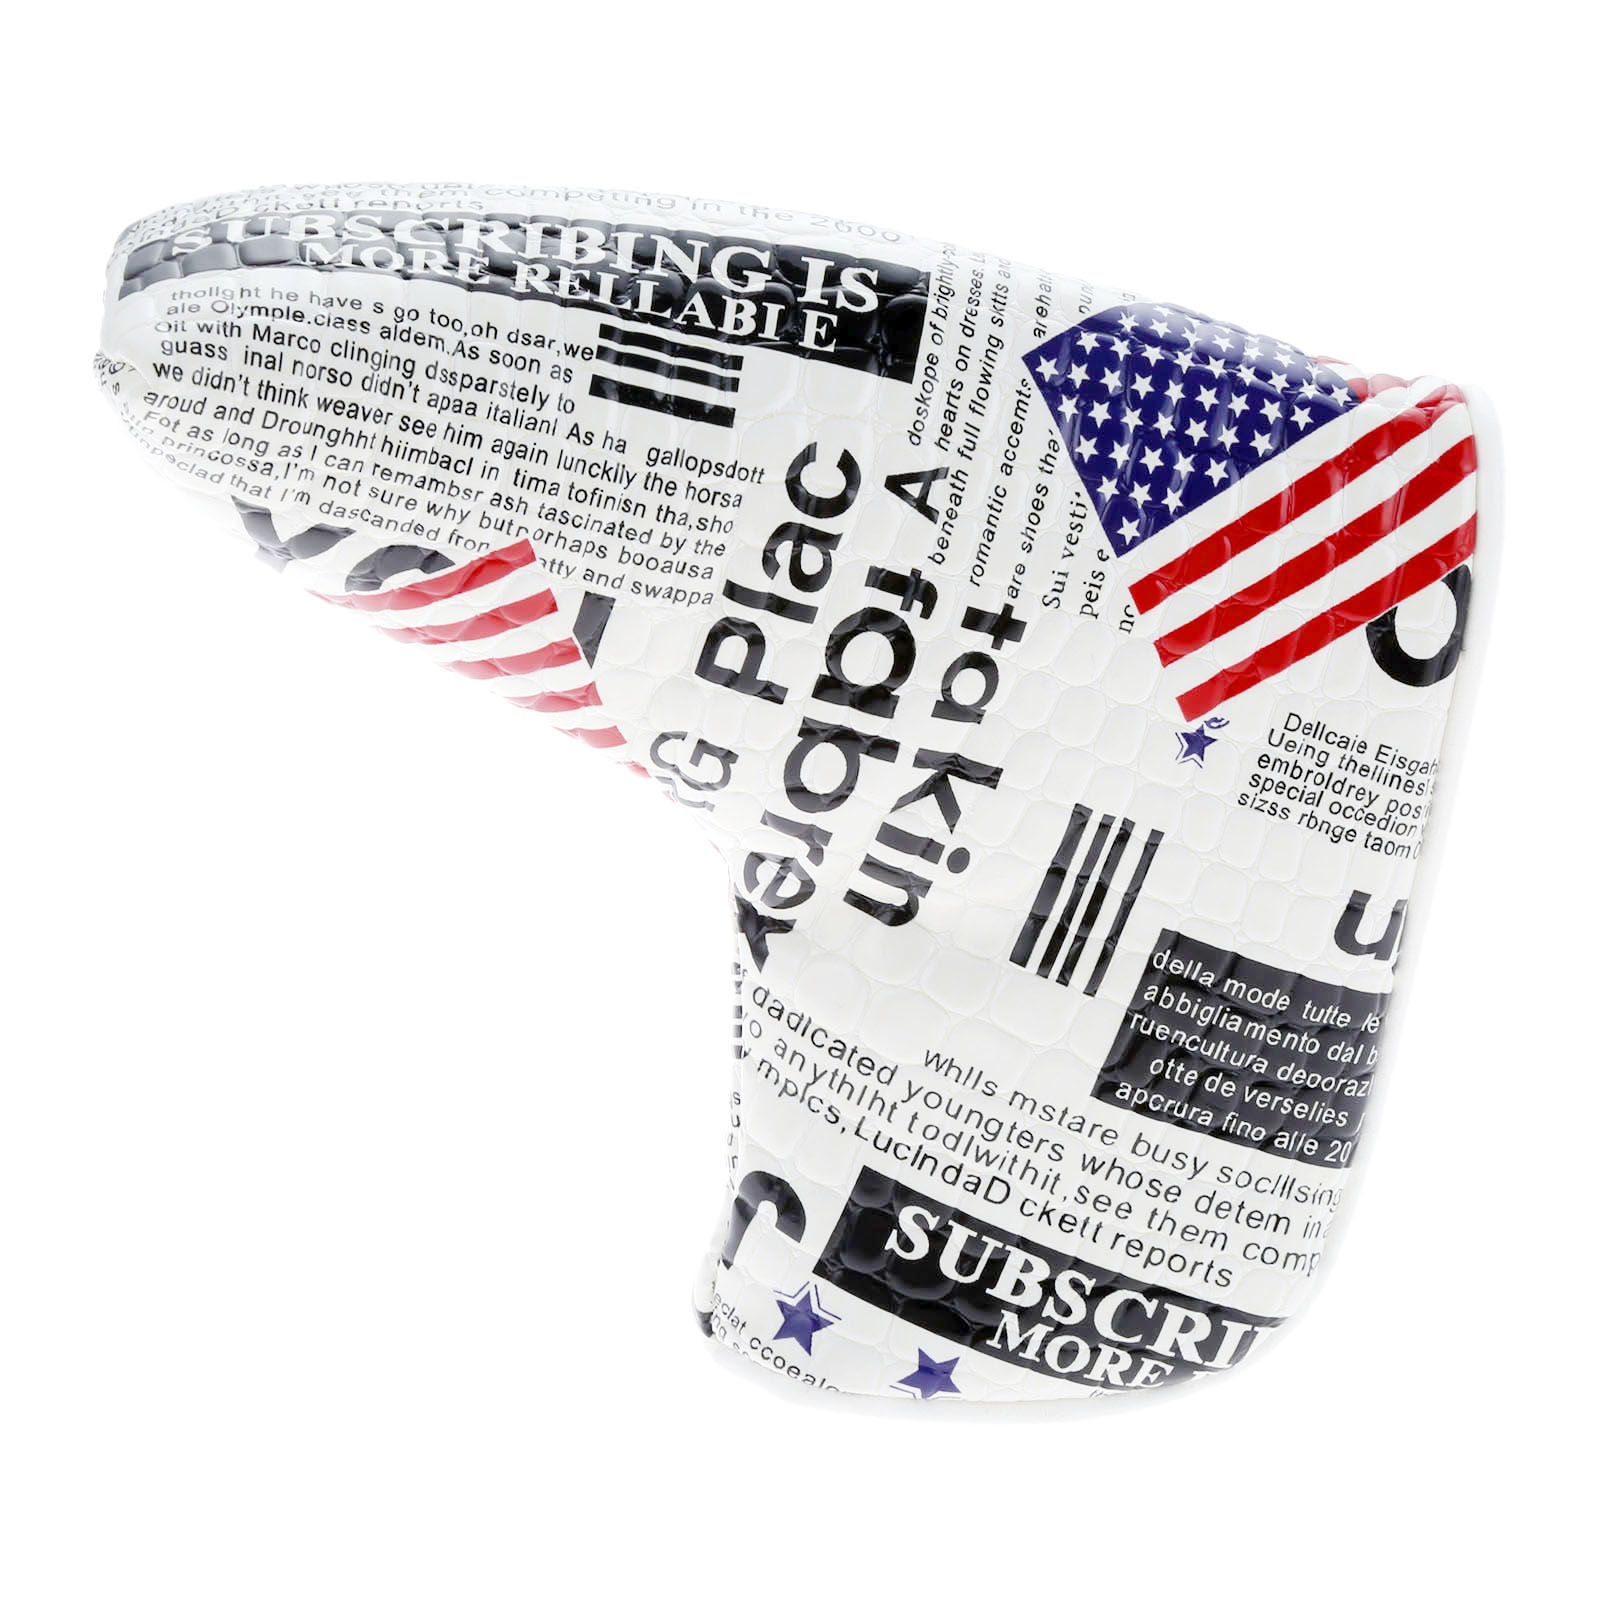 1Pc USA Flag Golf Blade Putter Head Cover PU Waterproof Headcover Protector Bag With Magnetic Closure Golf Club Head Accessories